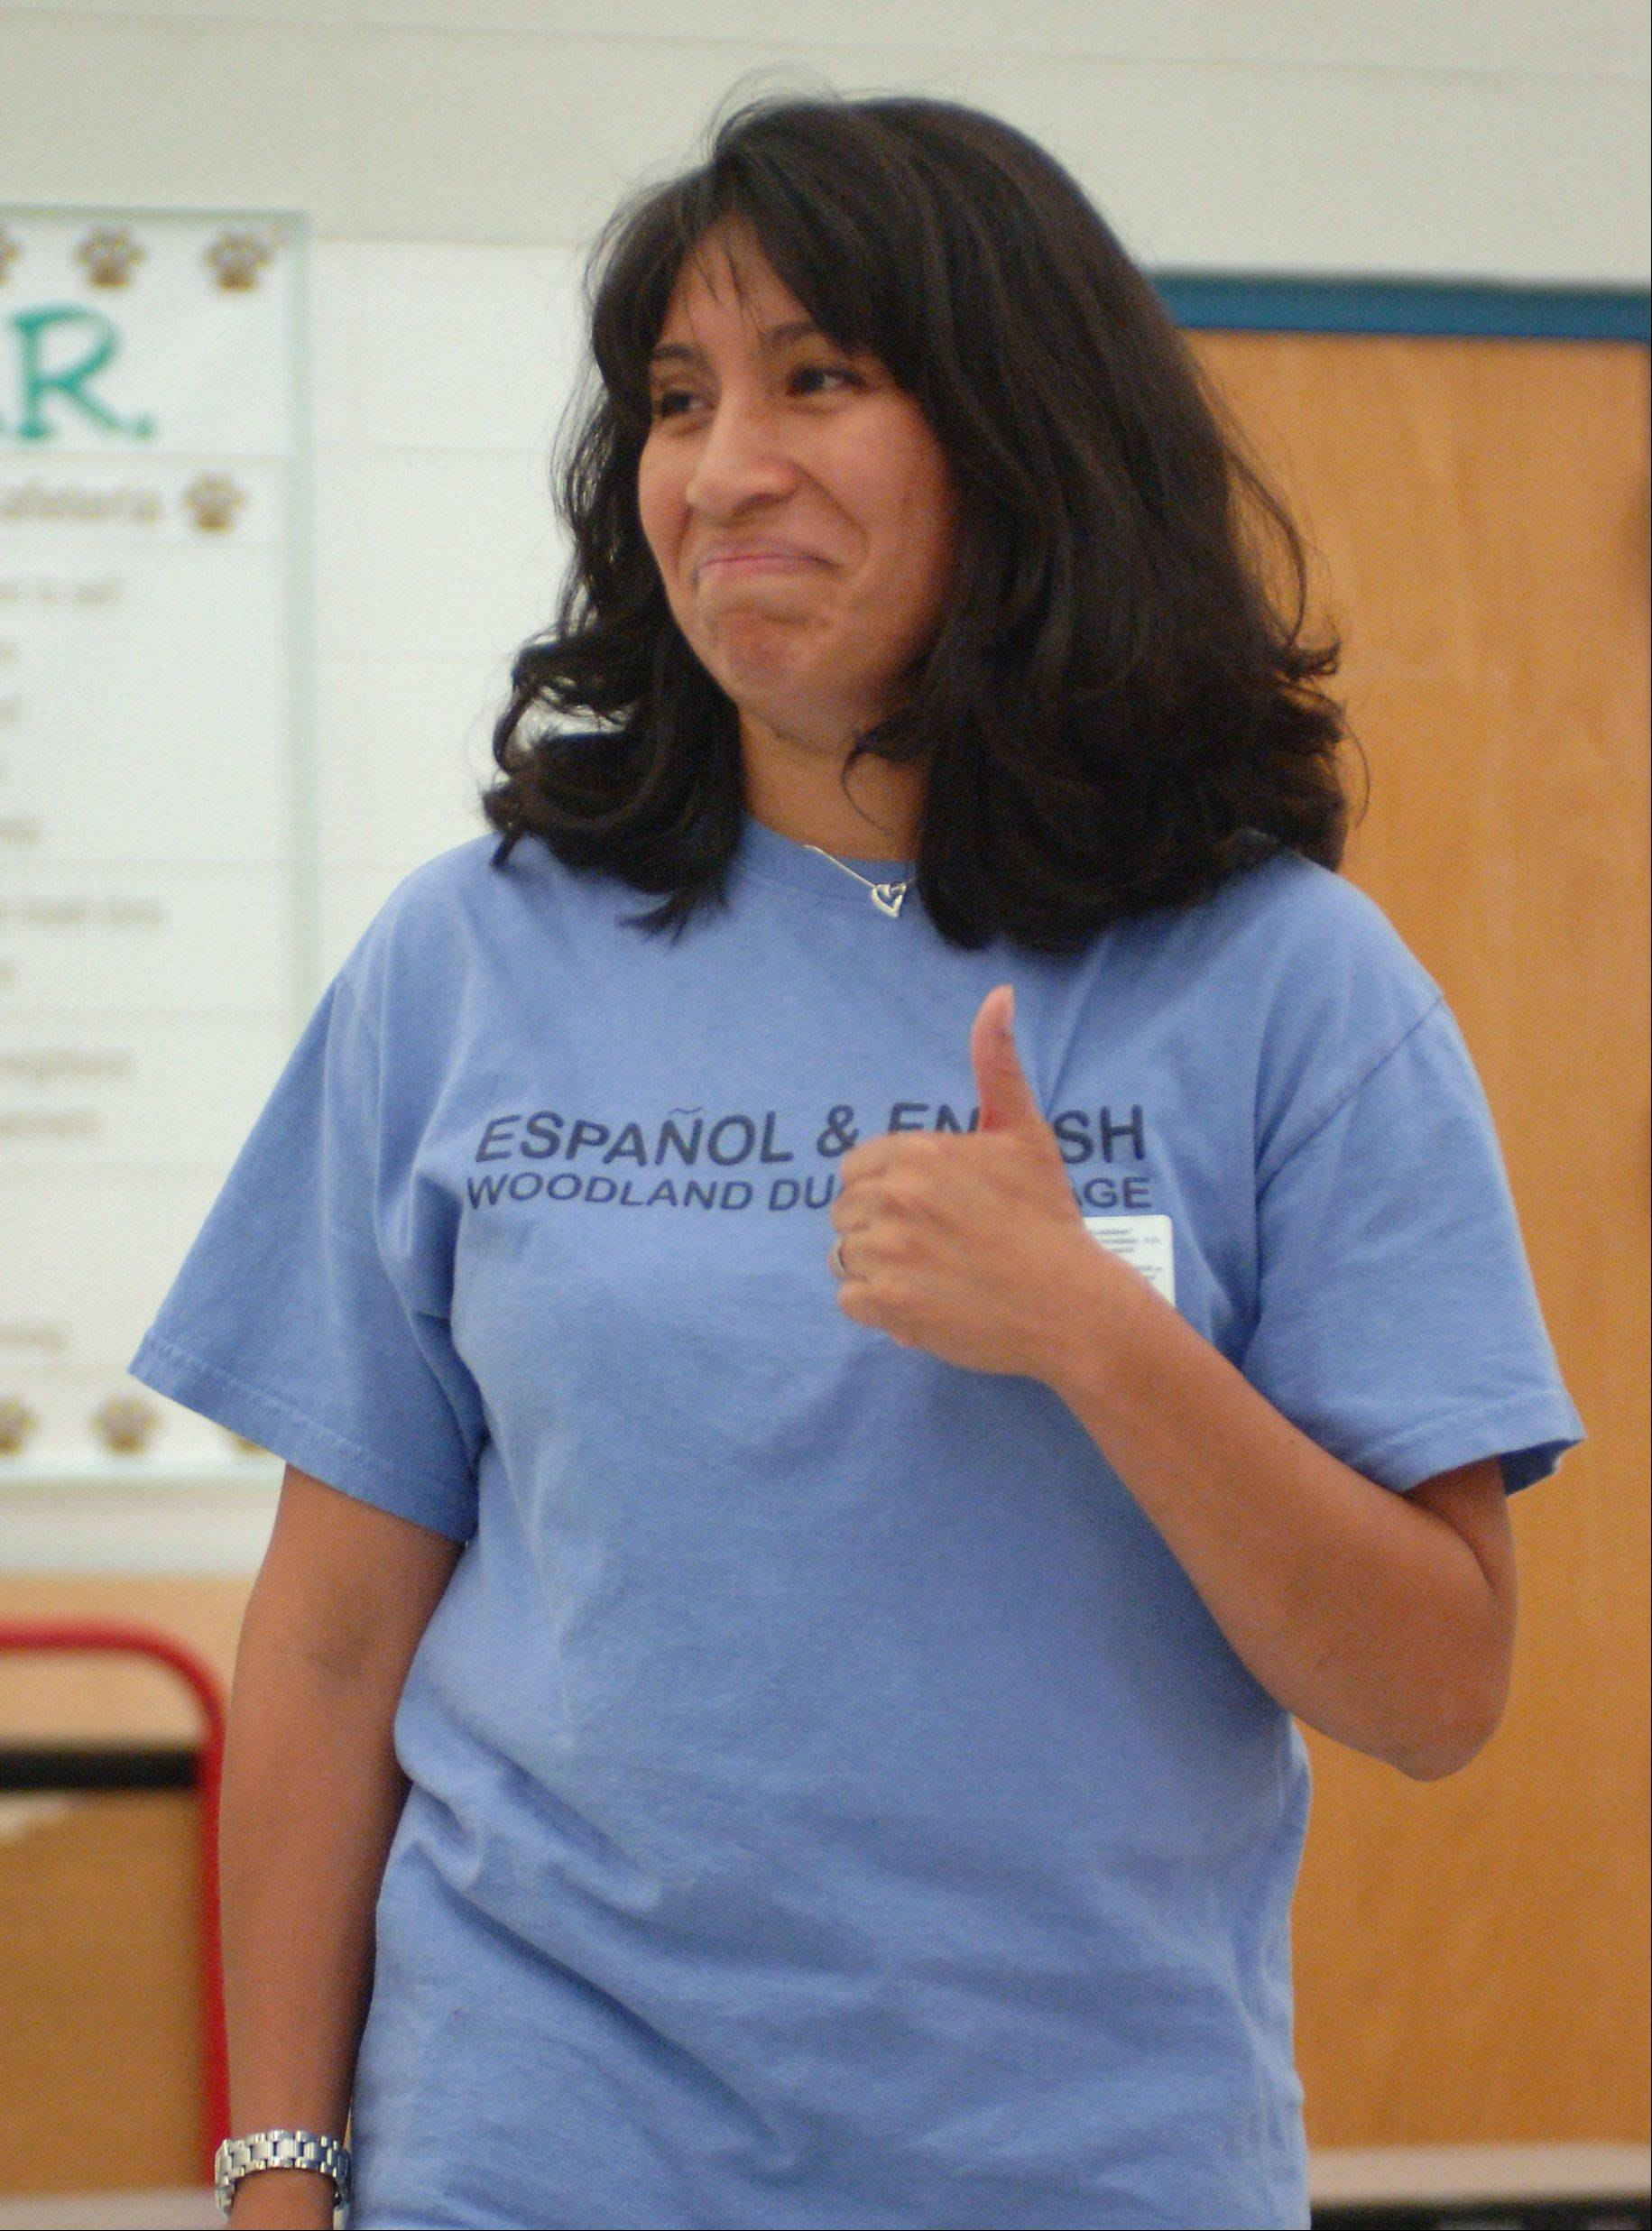 Woodland Primary School teacher Elizabeth Gaiser gives a thumbs-up after providing lunchroom instructions in Spanish to kindergarten students during the debut of a dual-language program Thursday.